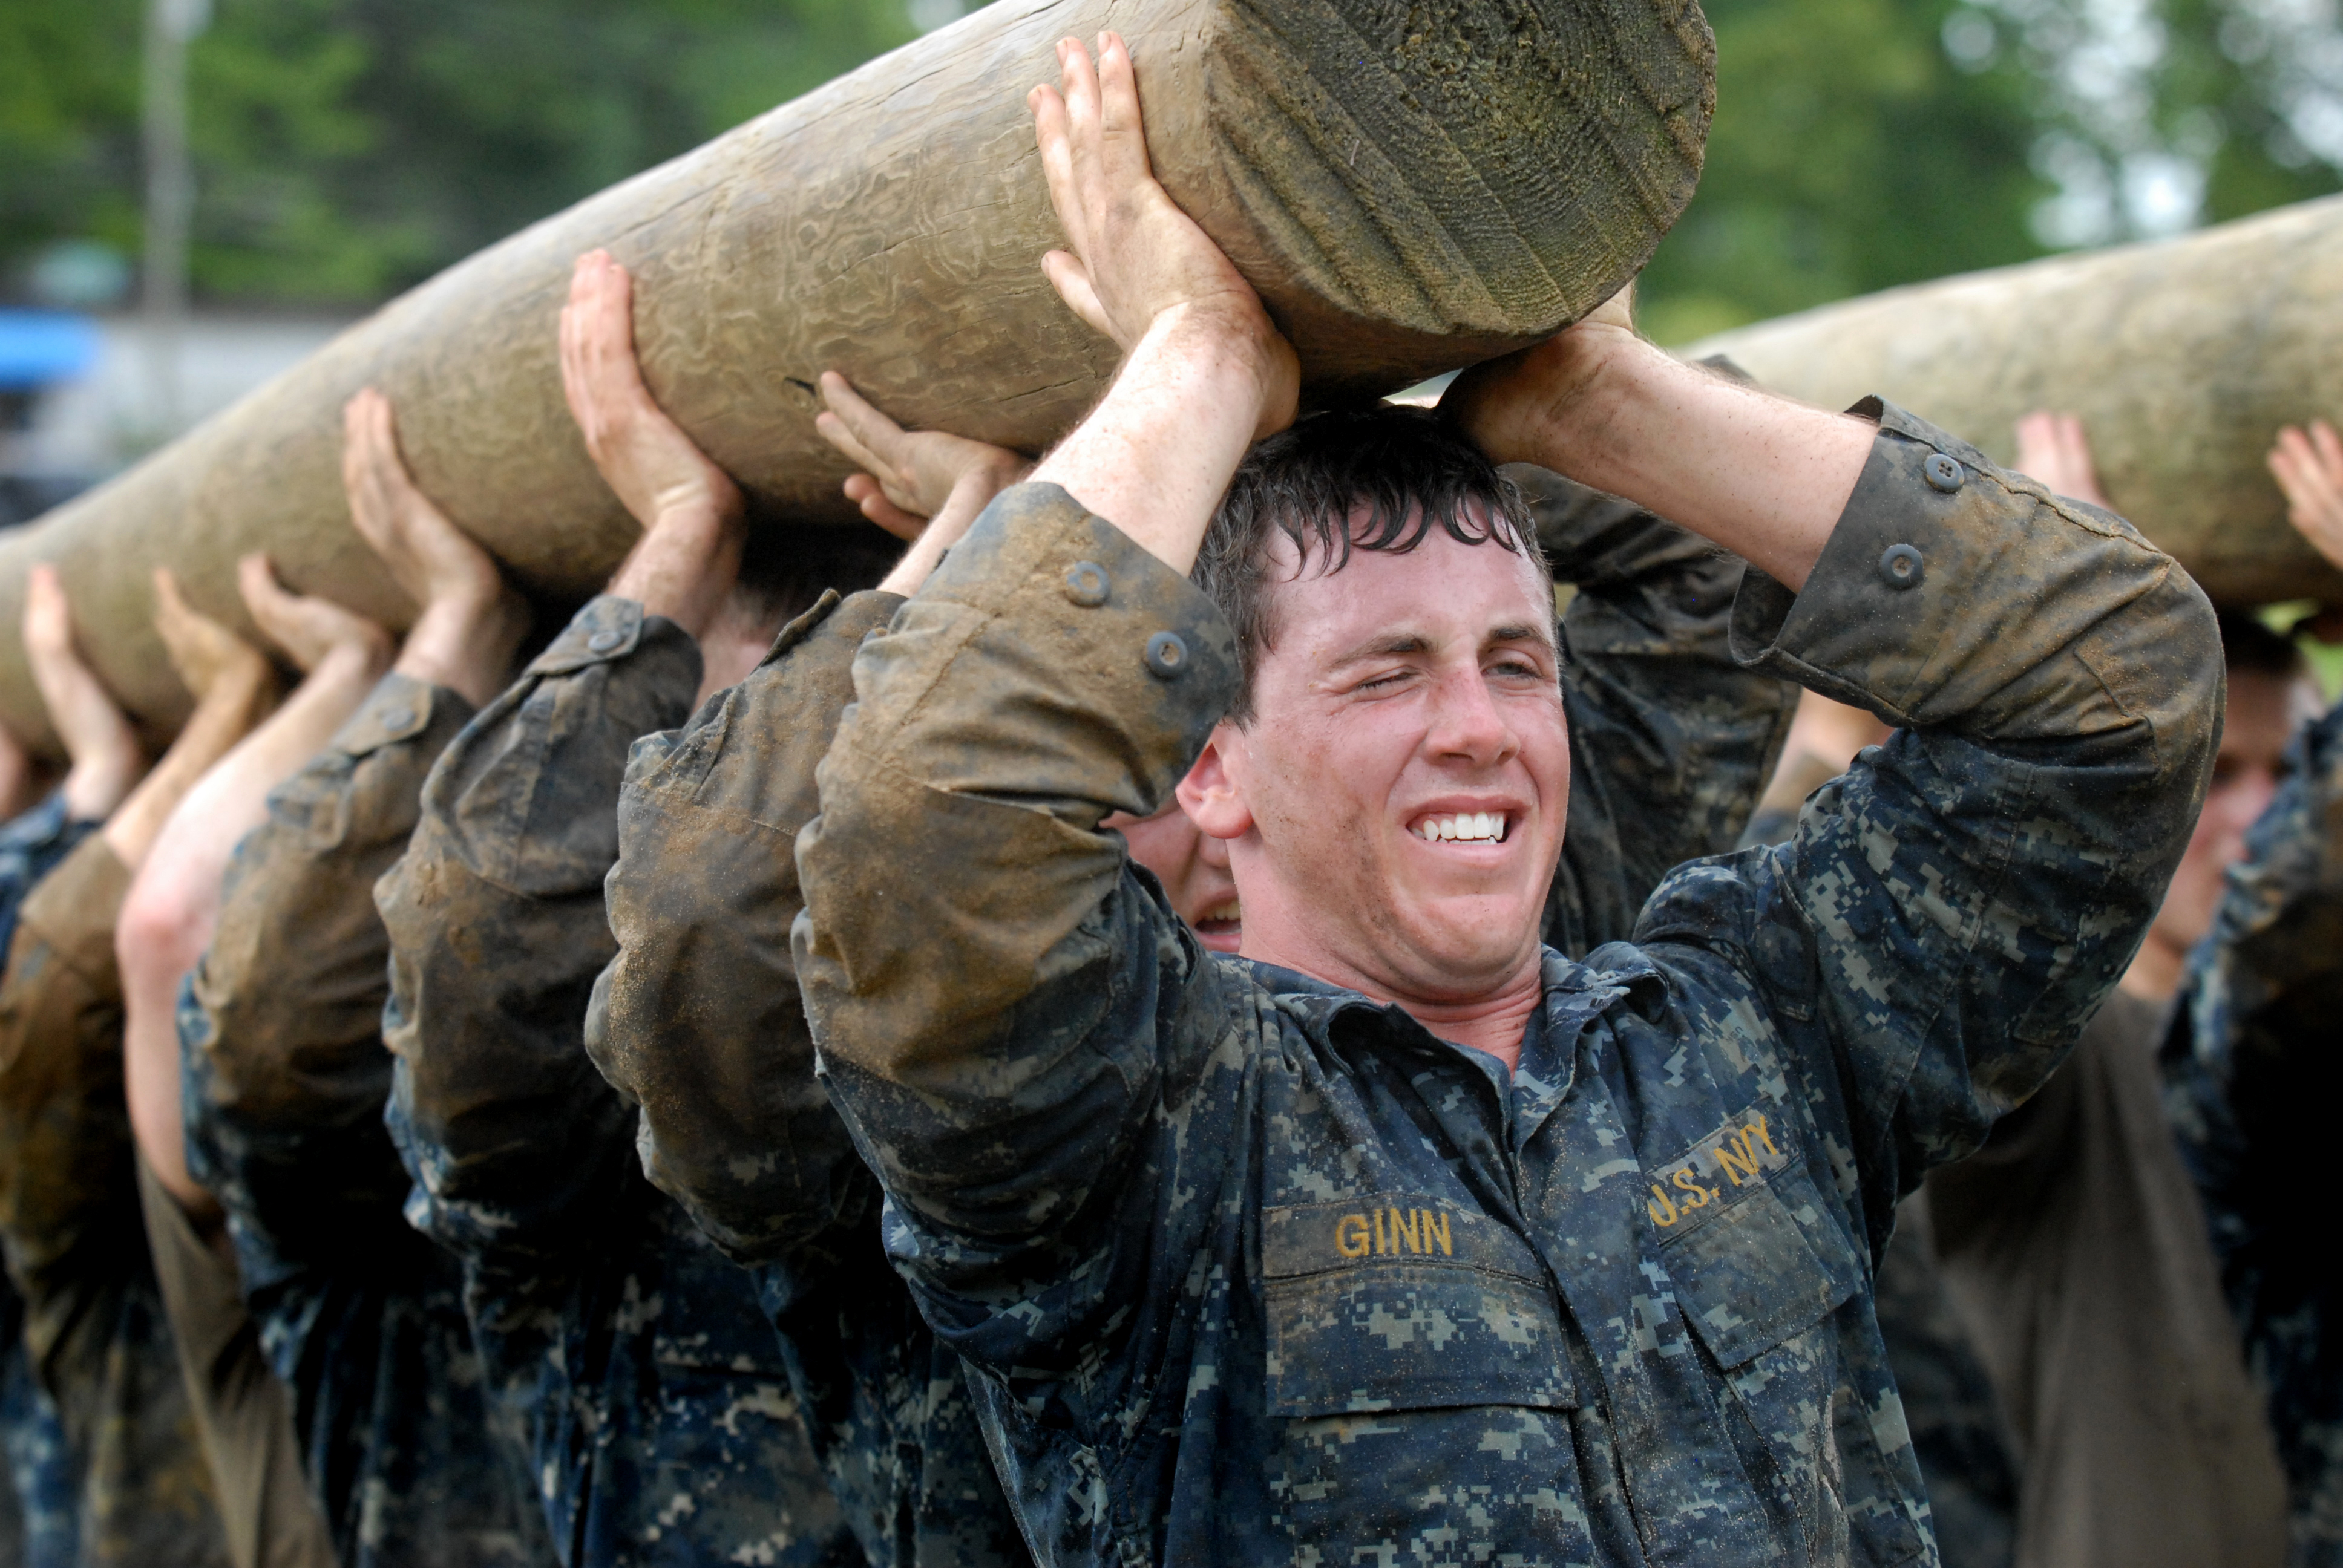 File:US Navy 110517-N-OA833-007 Plebes carry a modified ...